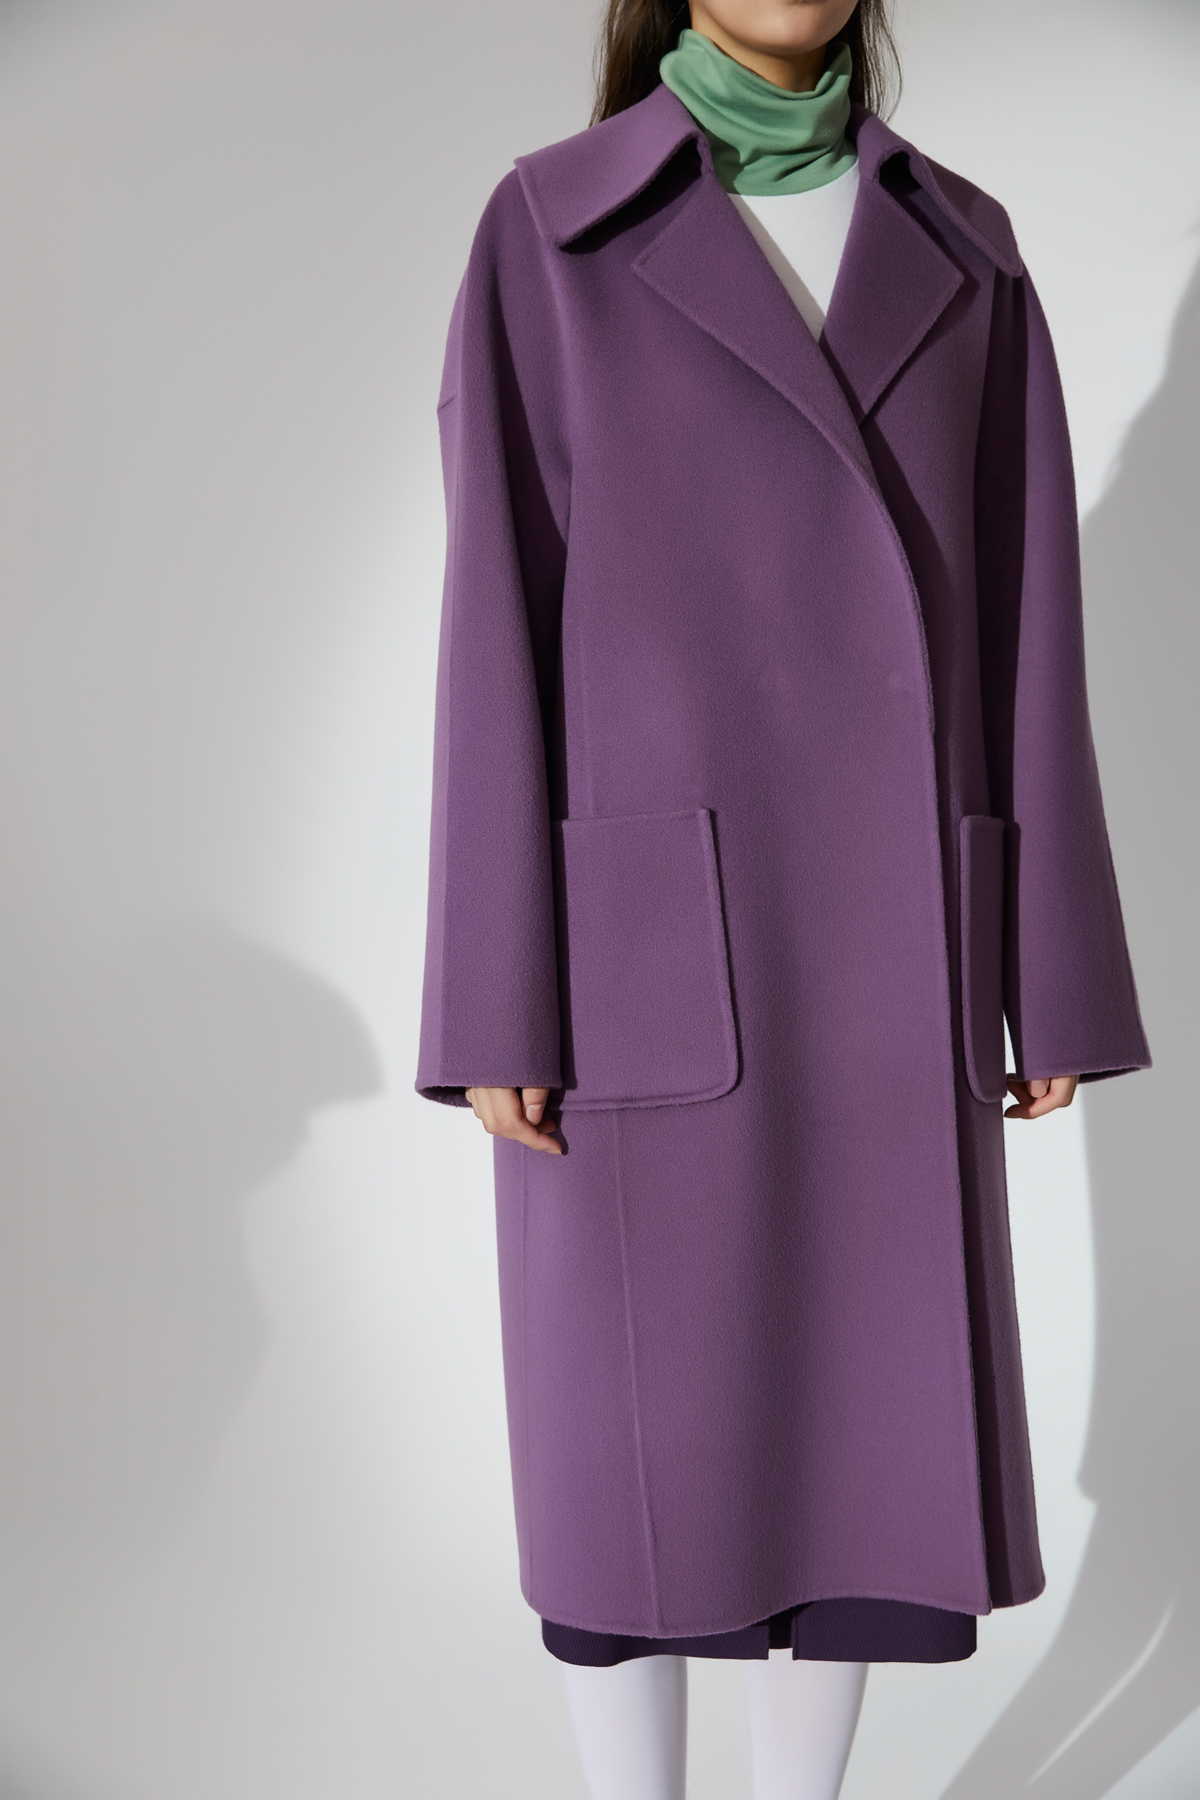 Outpocket Oversized Handmade Coat Purple